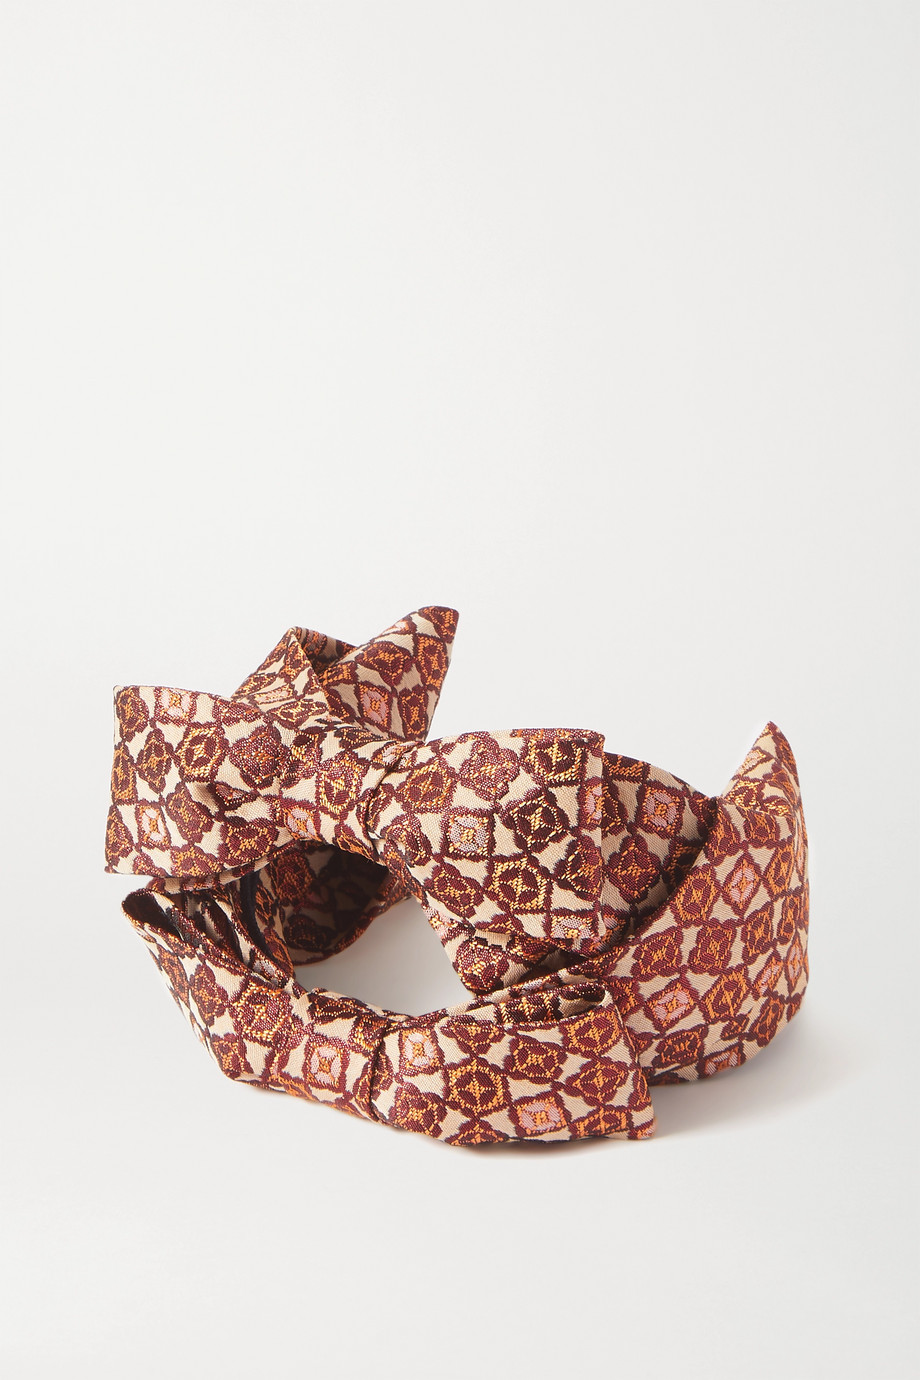 PRUDENCE MILLINERY Bow-detailed metallic jacquard headband